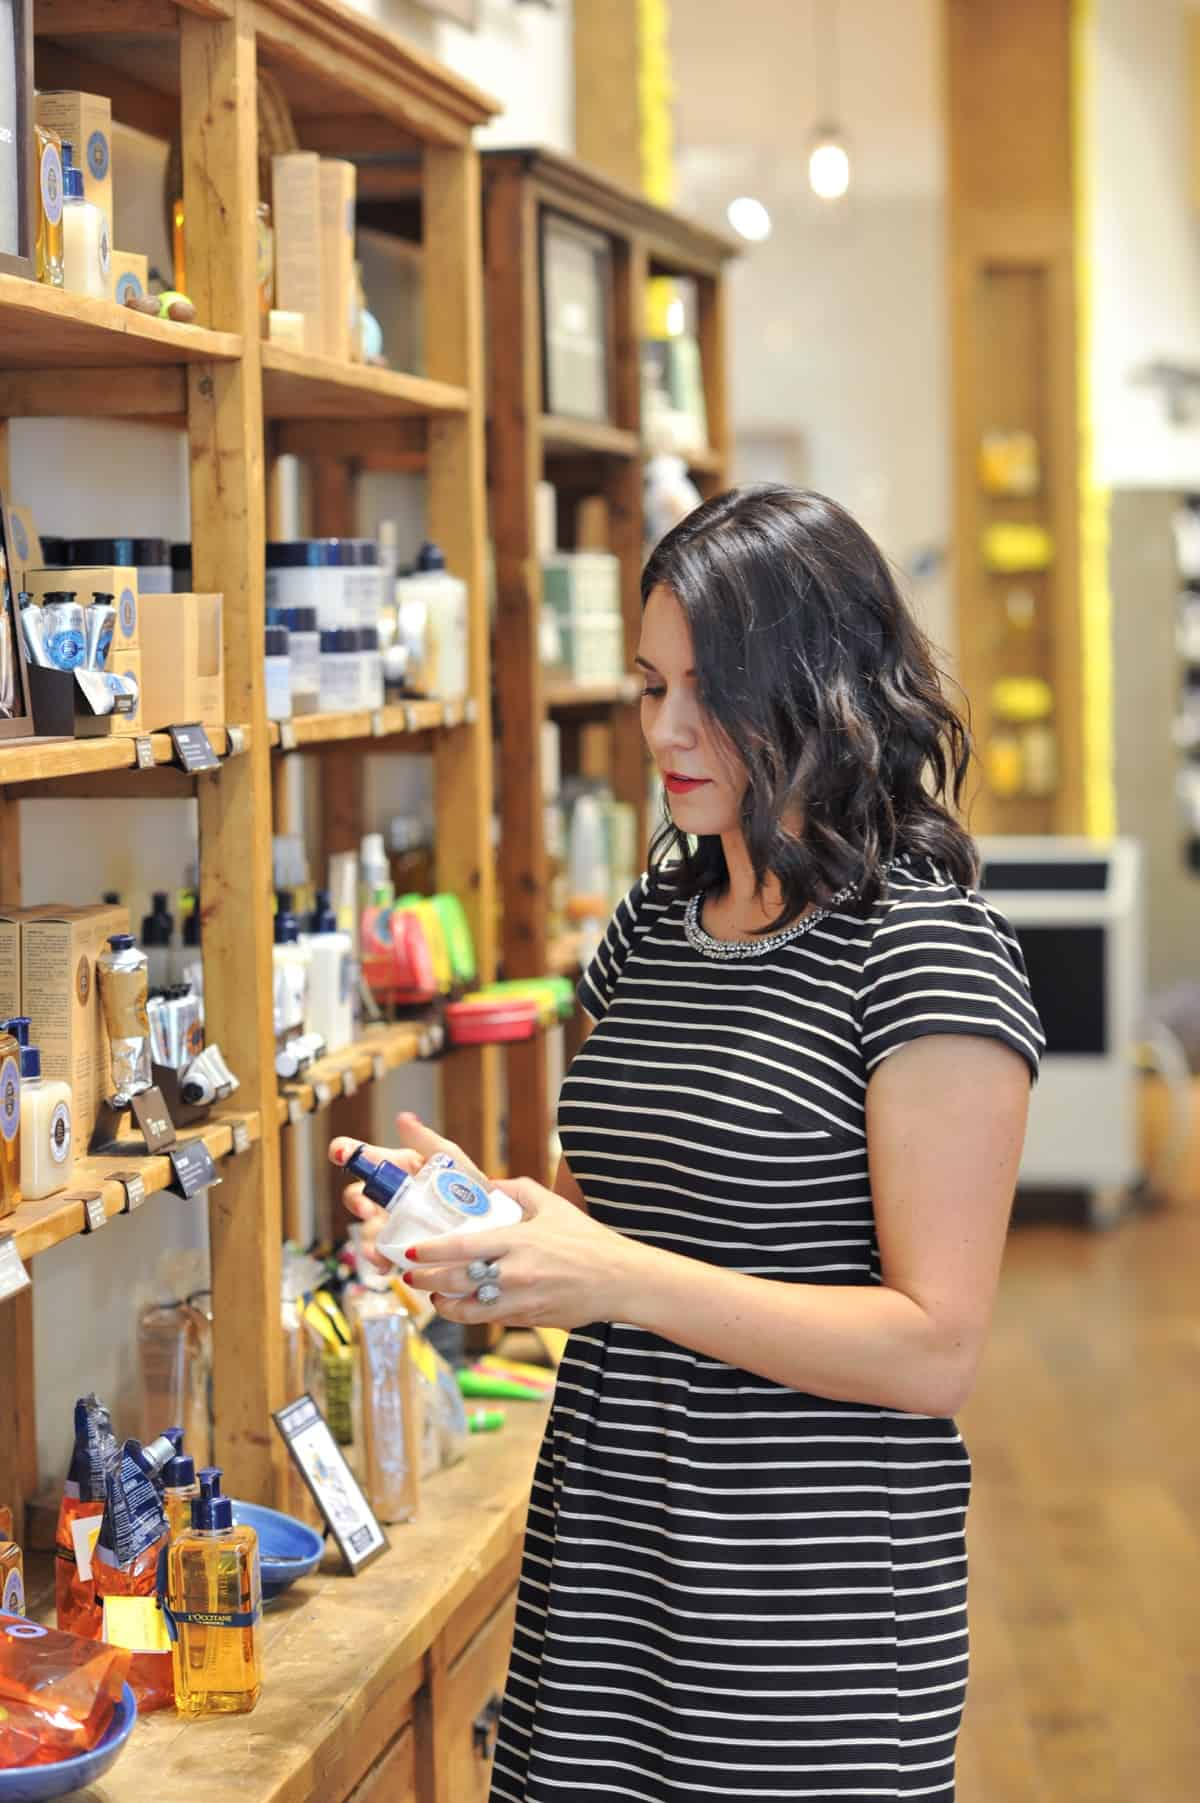 Loccitane, french inspired shops in Atlanta - My Style Vita @mystylevita